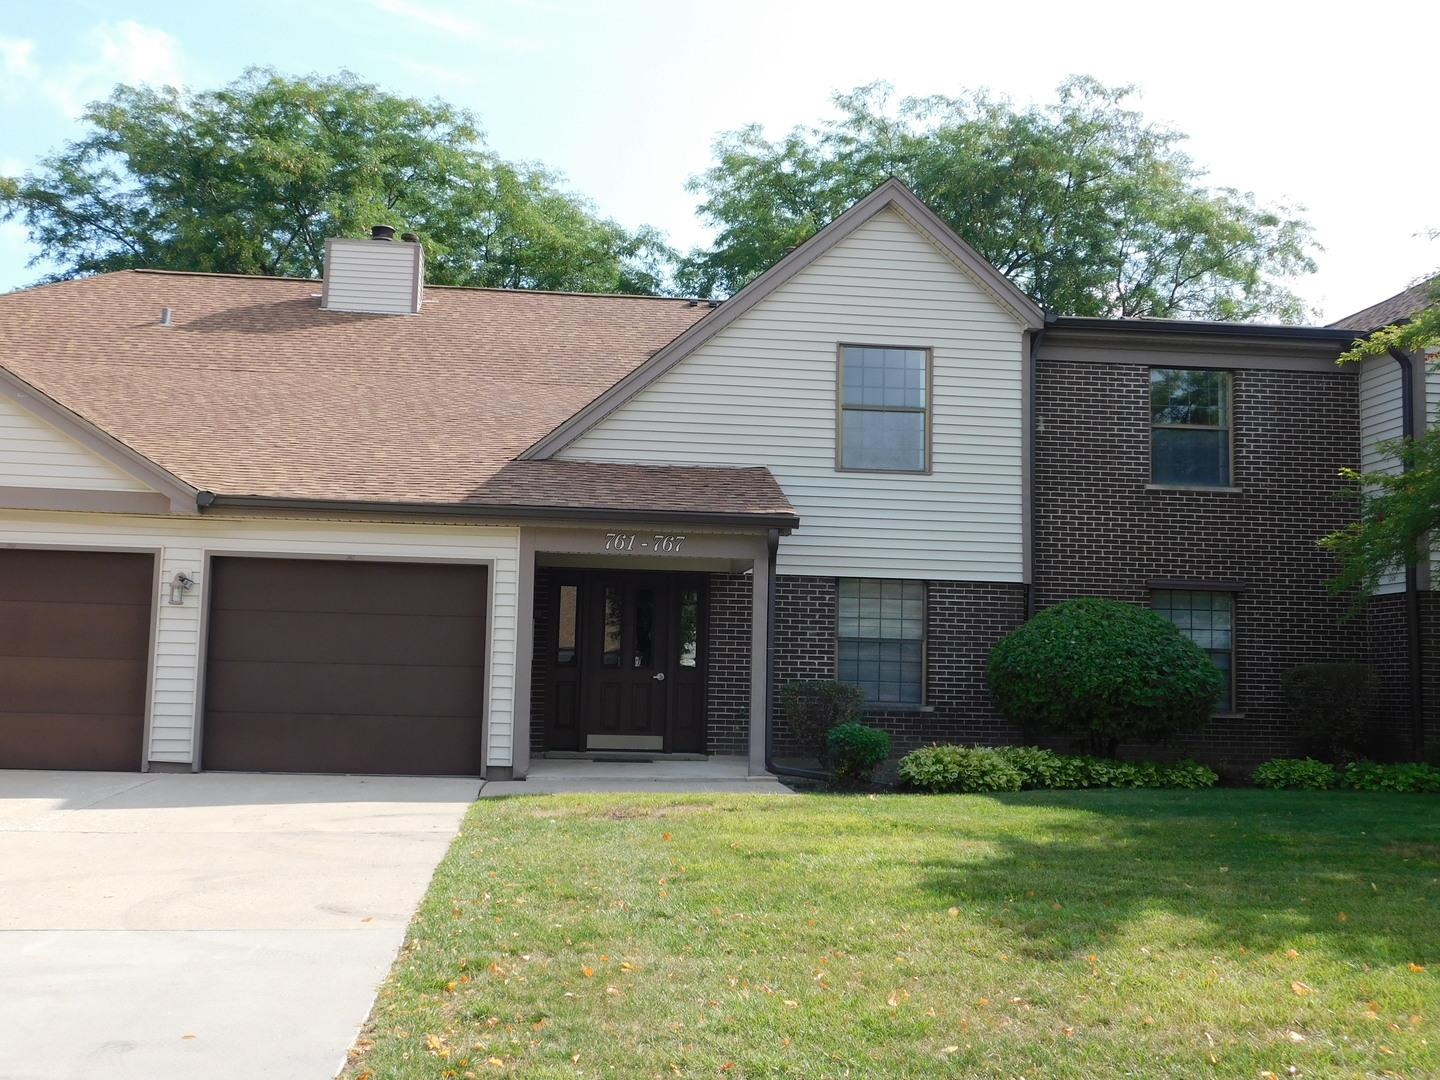 767 White Pine Road #767, Buffalo Grove, IL 60089 - #: 10841875